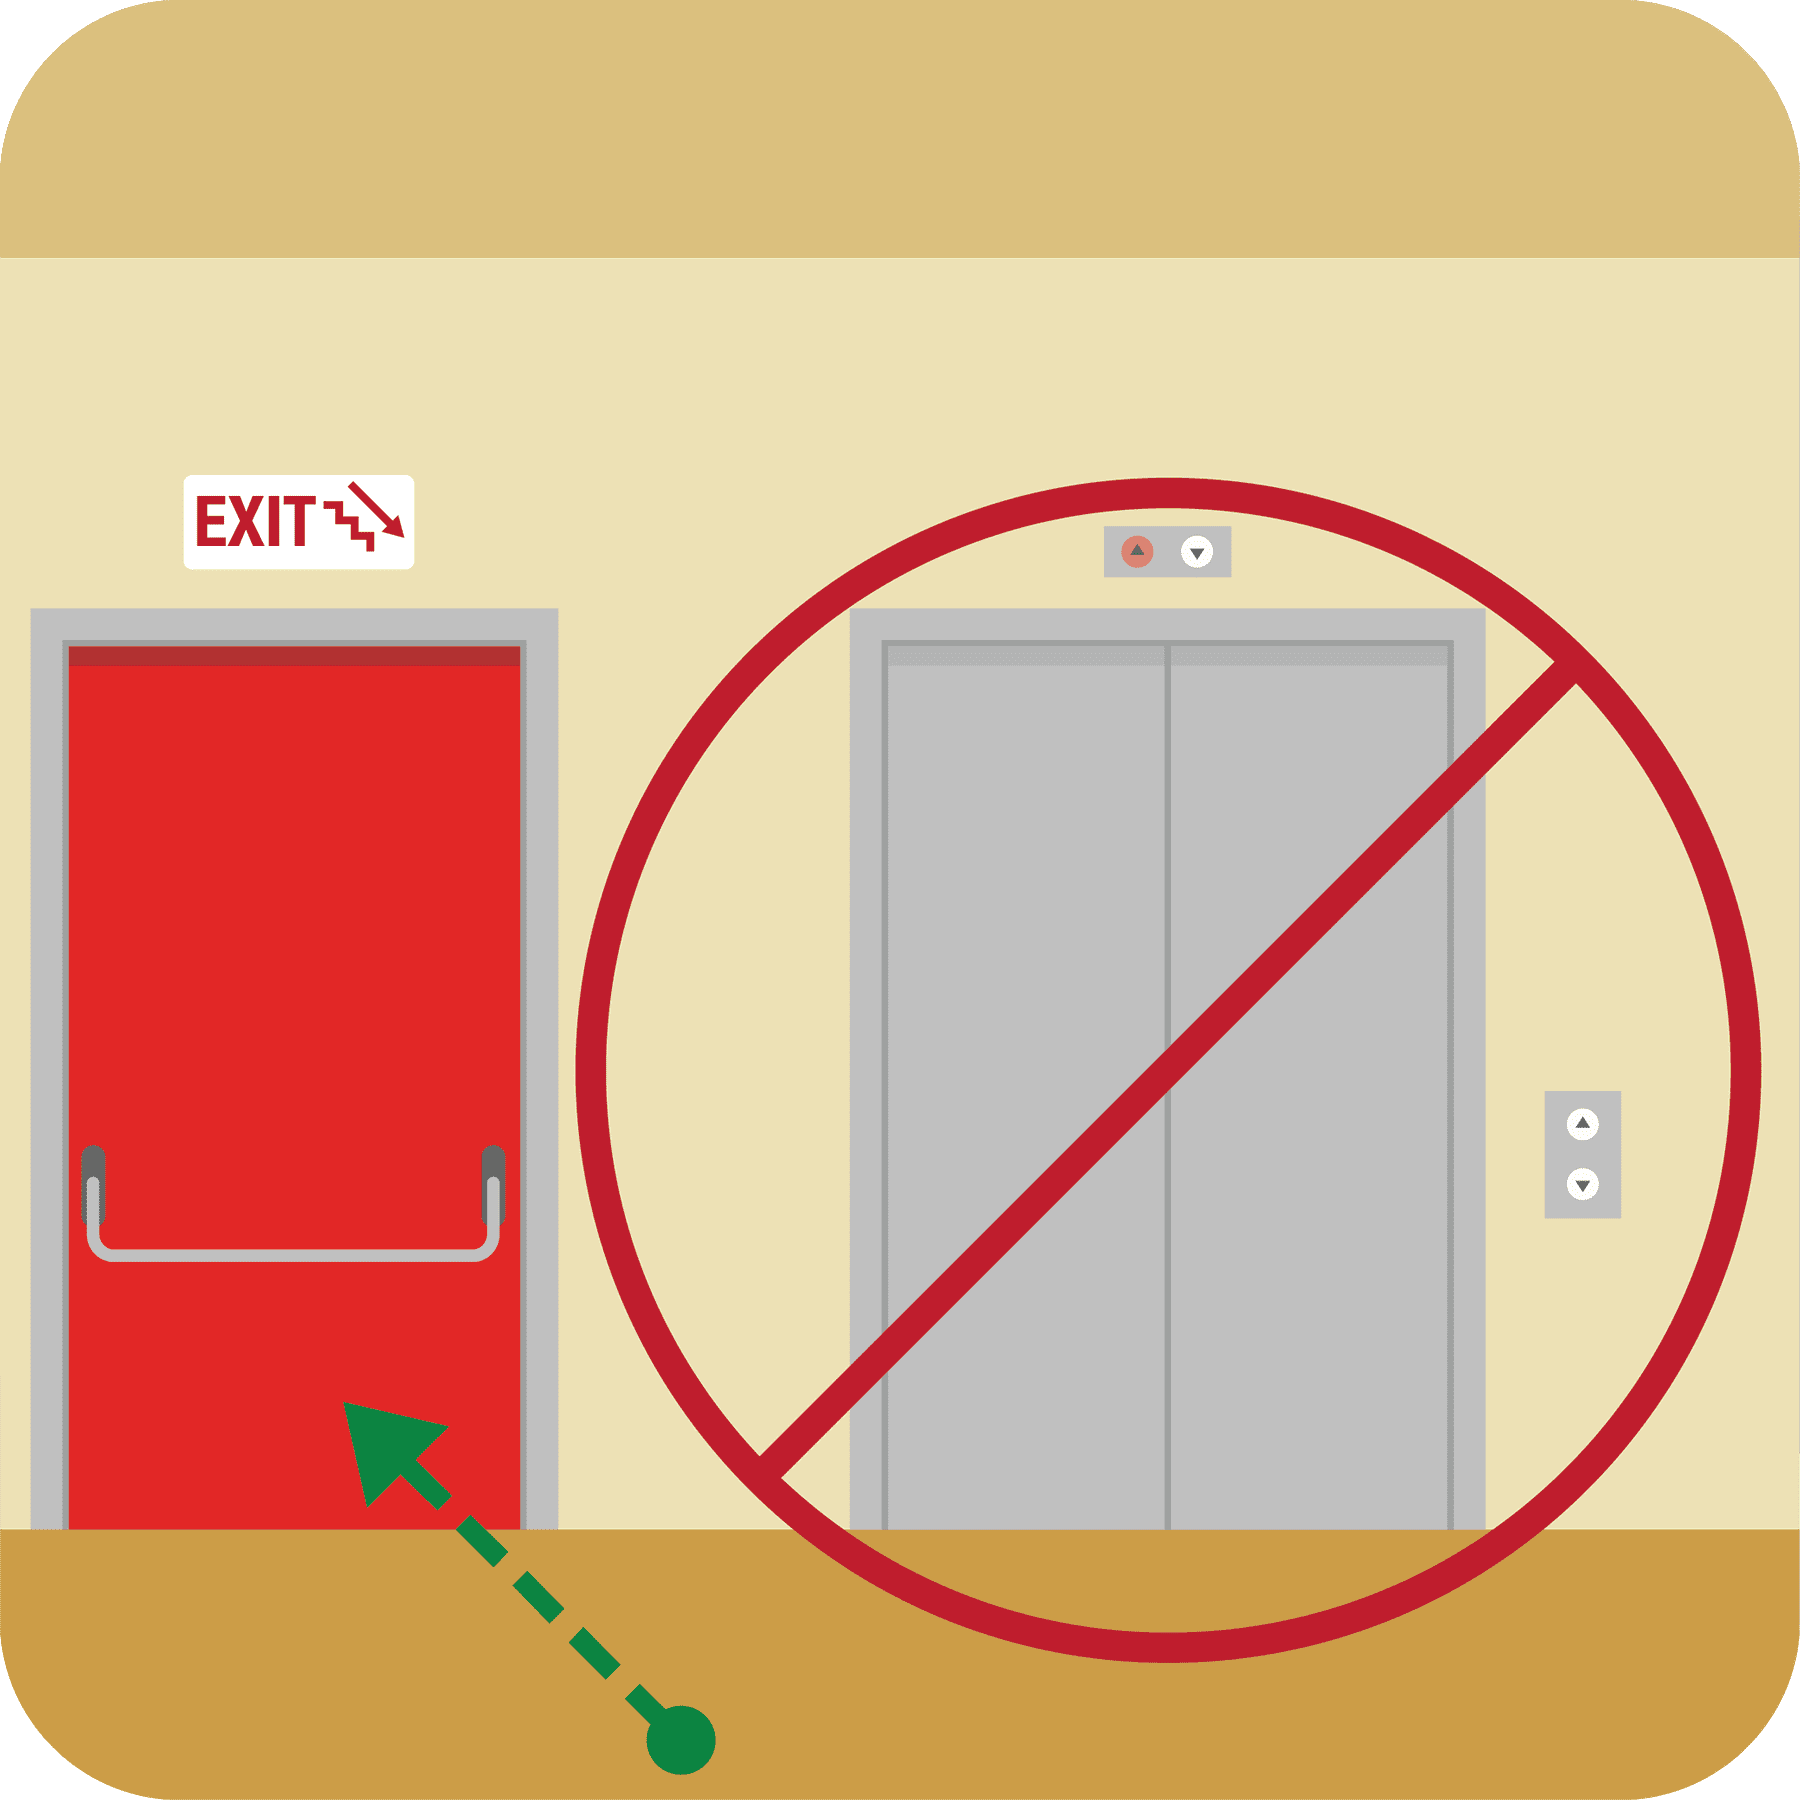 Elevator with red x over it and green arrow pointing to the exit.